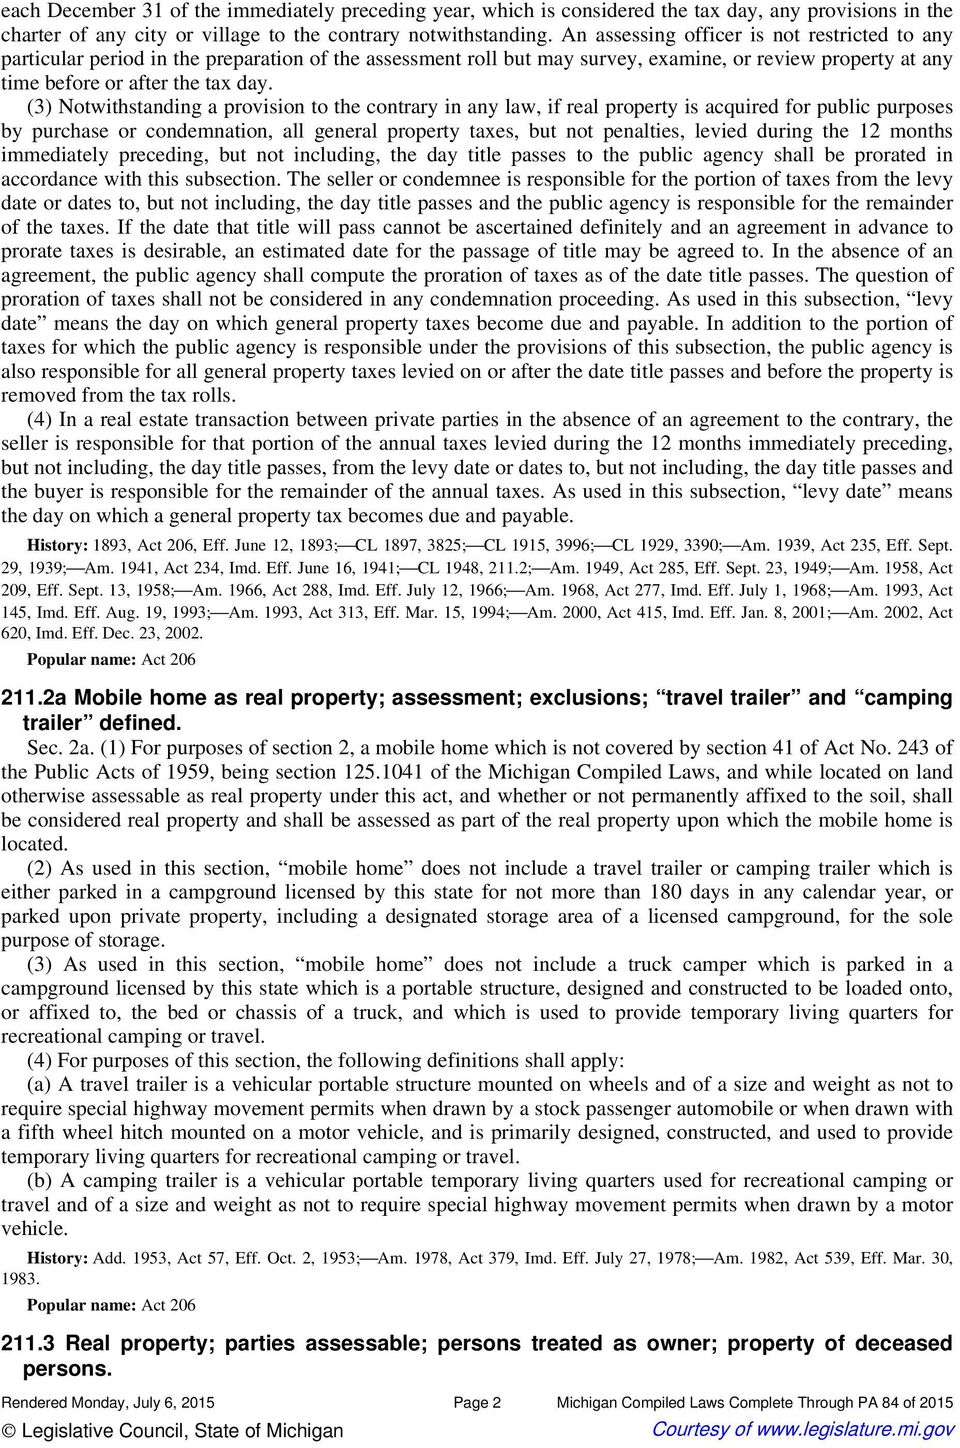 (3) Notwithstanding a provision to the contrary in any law, if real property is acquired for public purposes by purchase or condemnation, all general property taxes, but not penalties, levied during